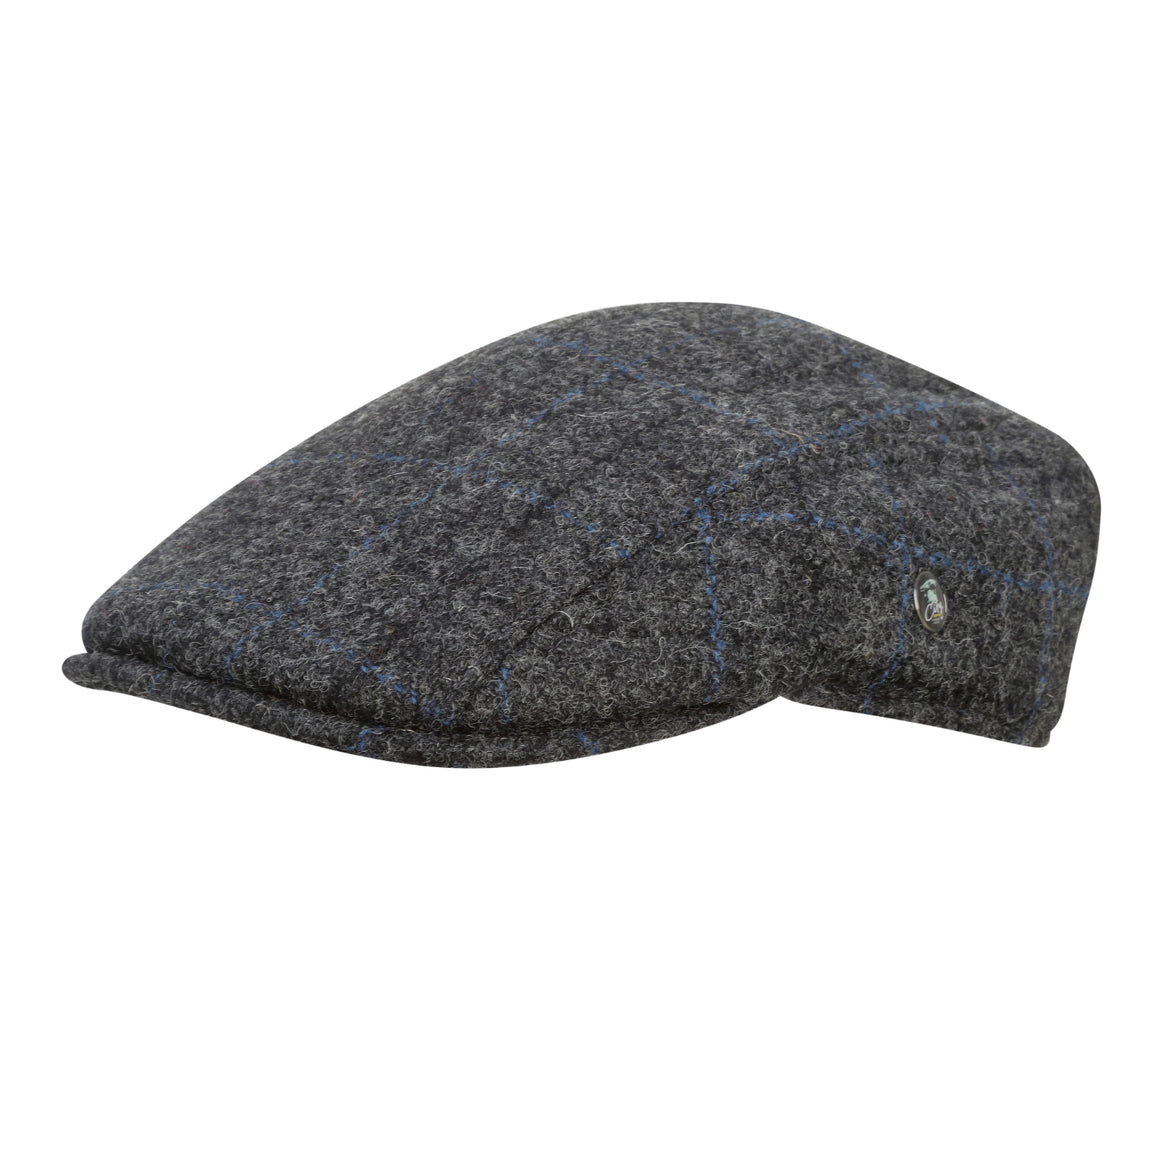 City Sport - Comfort Fit - Wool Duckbill Cap - Grey Check 3191 | buy now at The Cashmere Choice | London